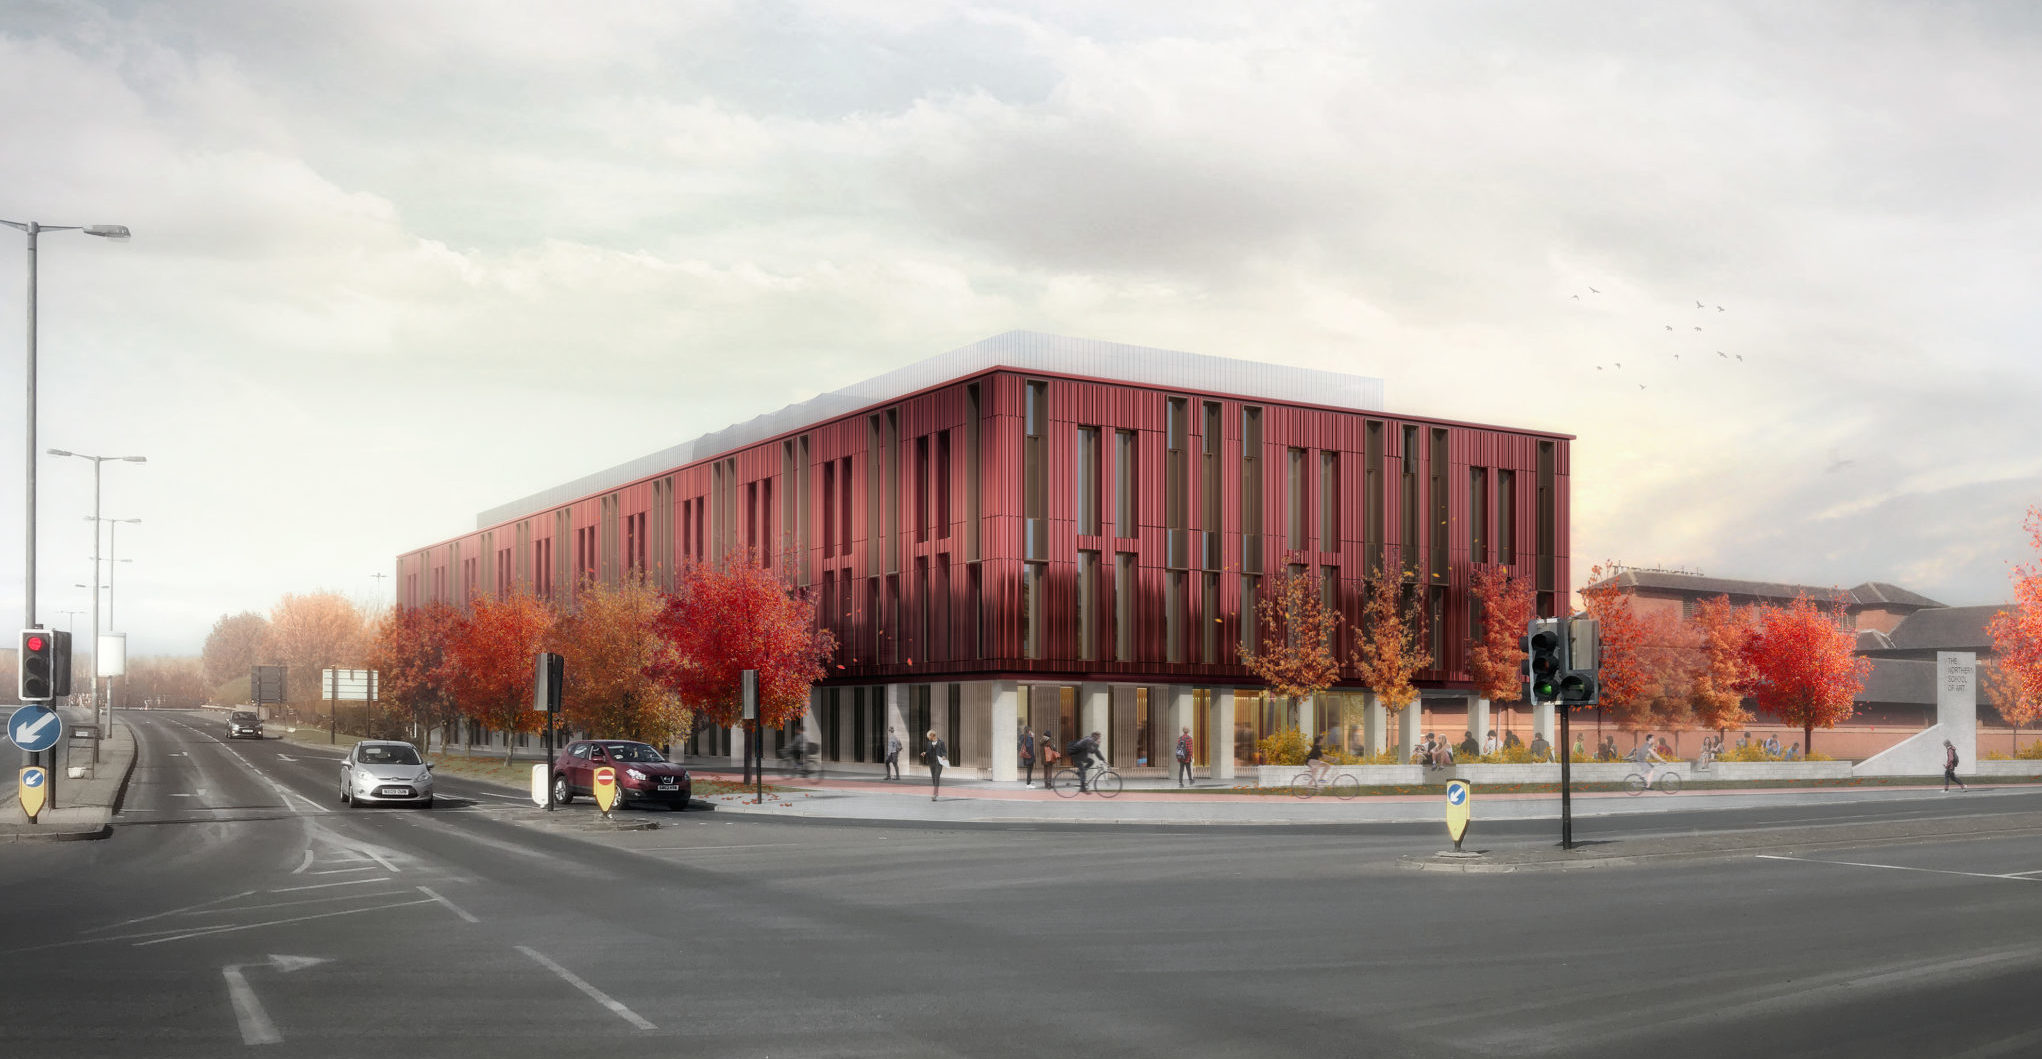 Planning application approved for The Northern School of Art's new £14.5m gateway building in central Middlesbrough